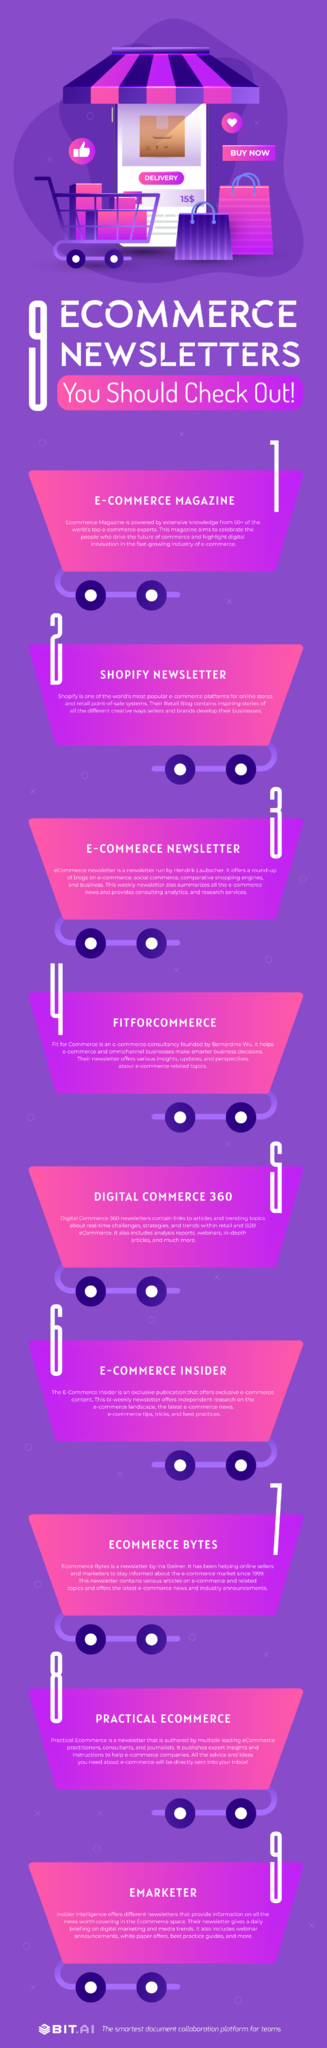 Ecommerce newsletters infographic